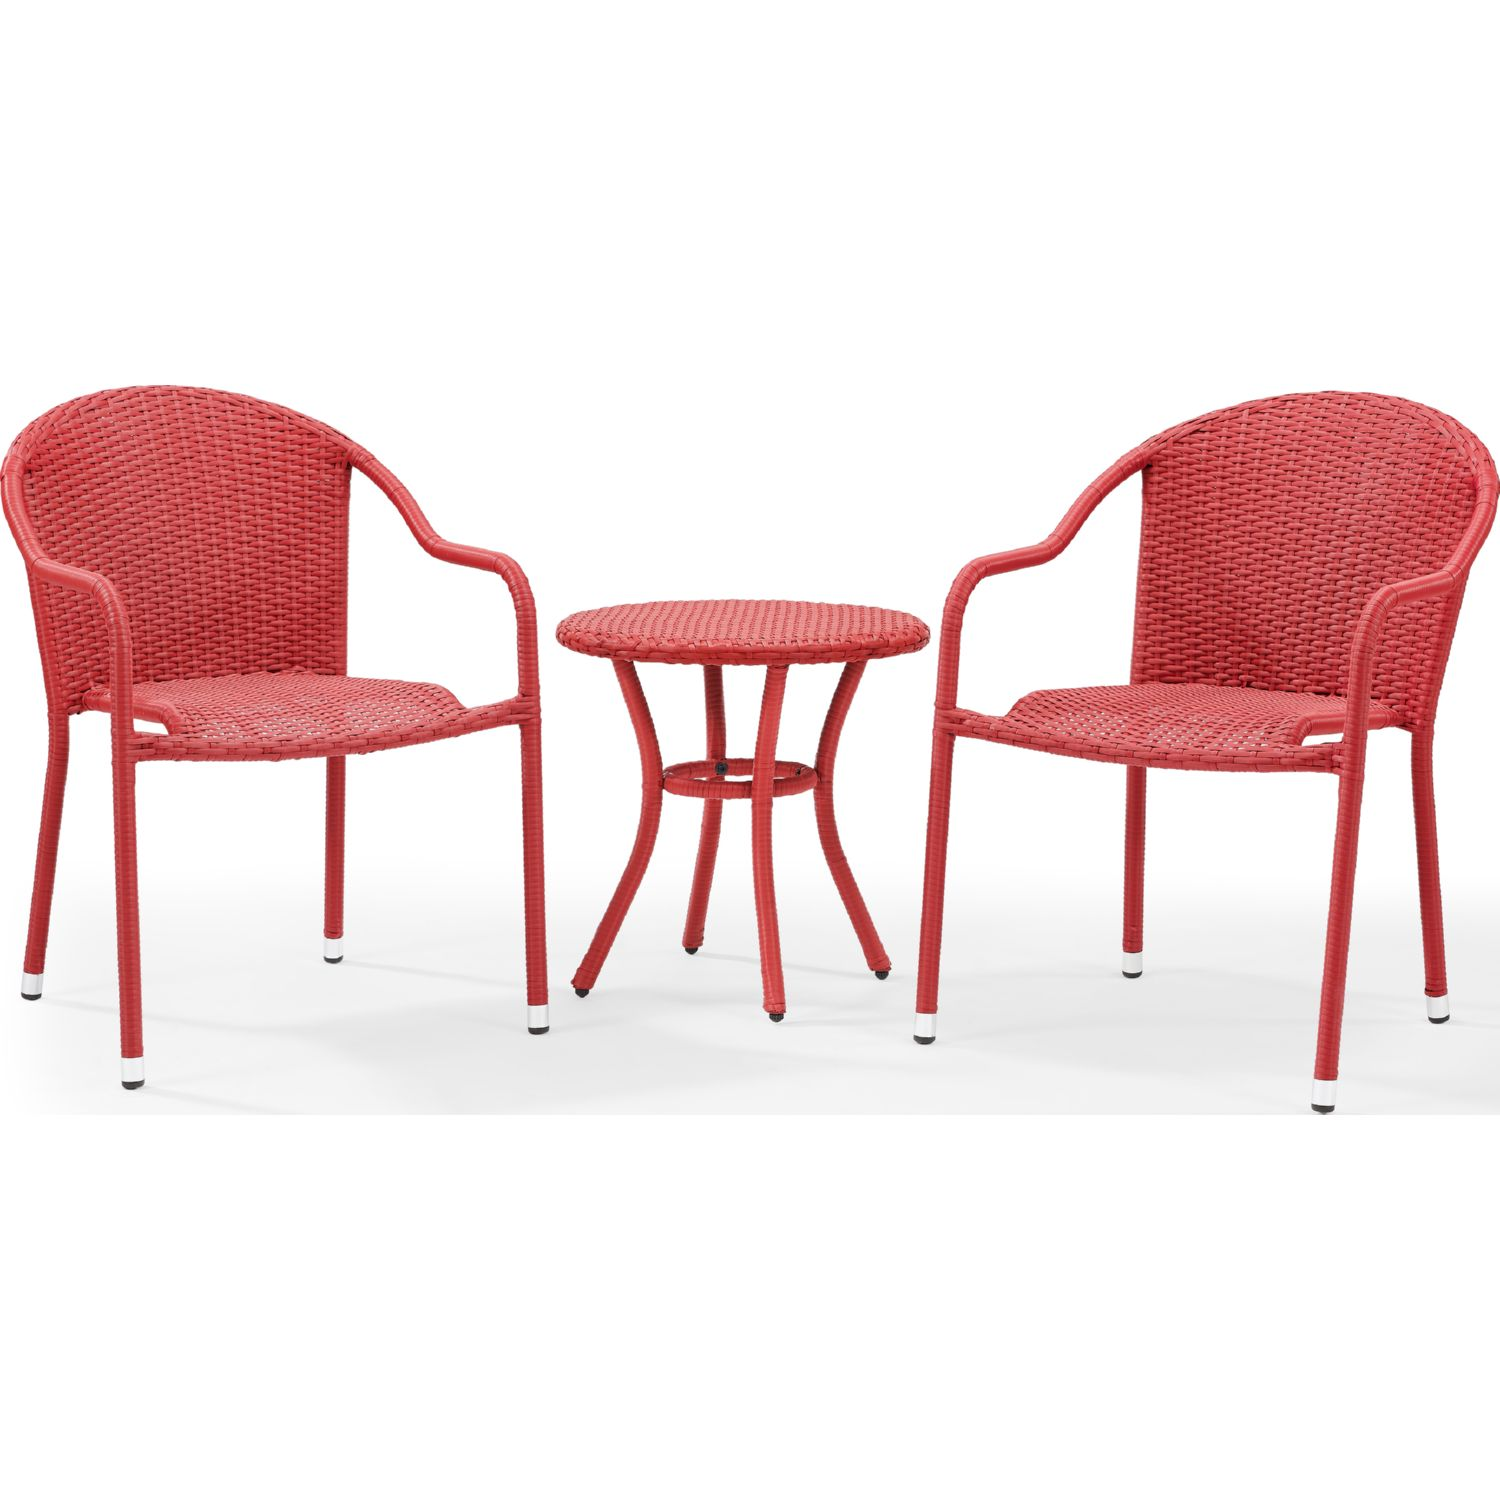 Palm Harbor 3 Piece Outdoor Wicker Cafe Seating Set In Red 2 Stacking Chairs And